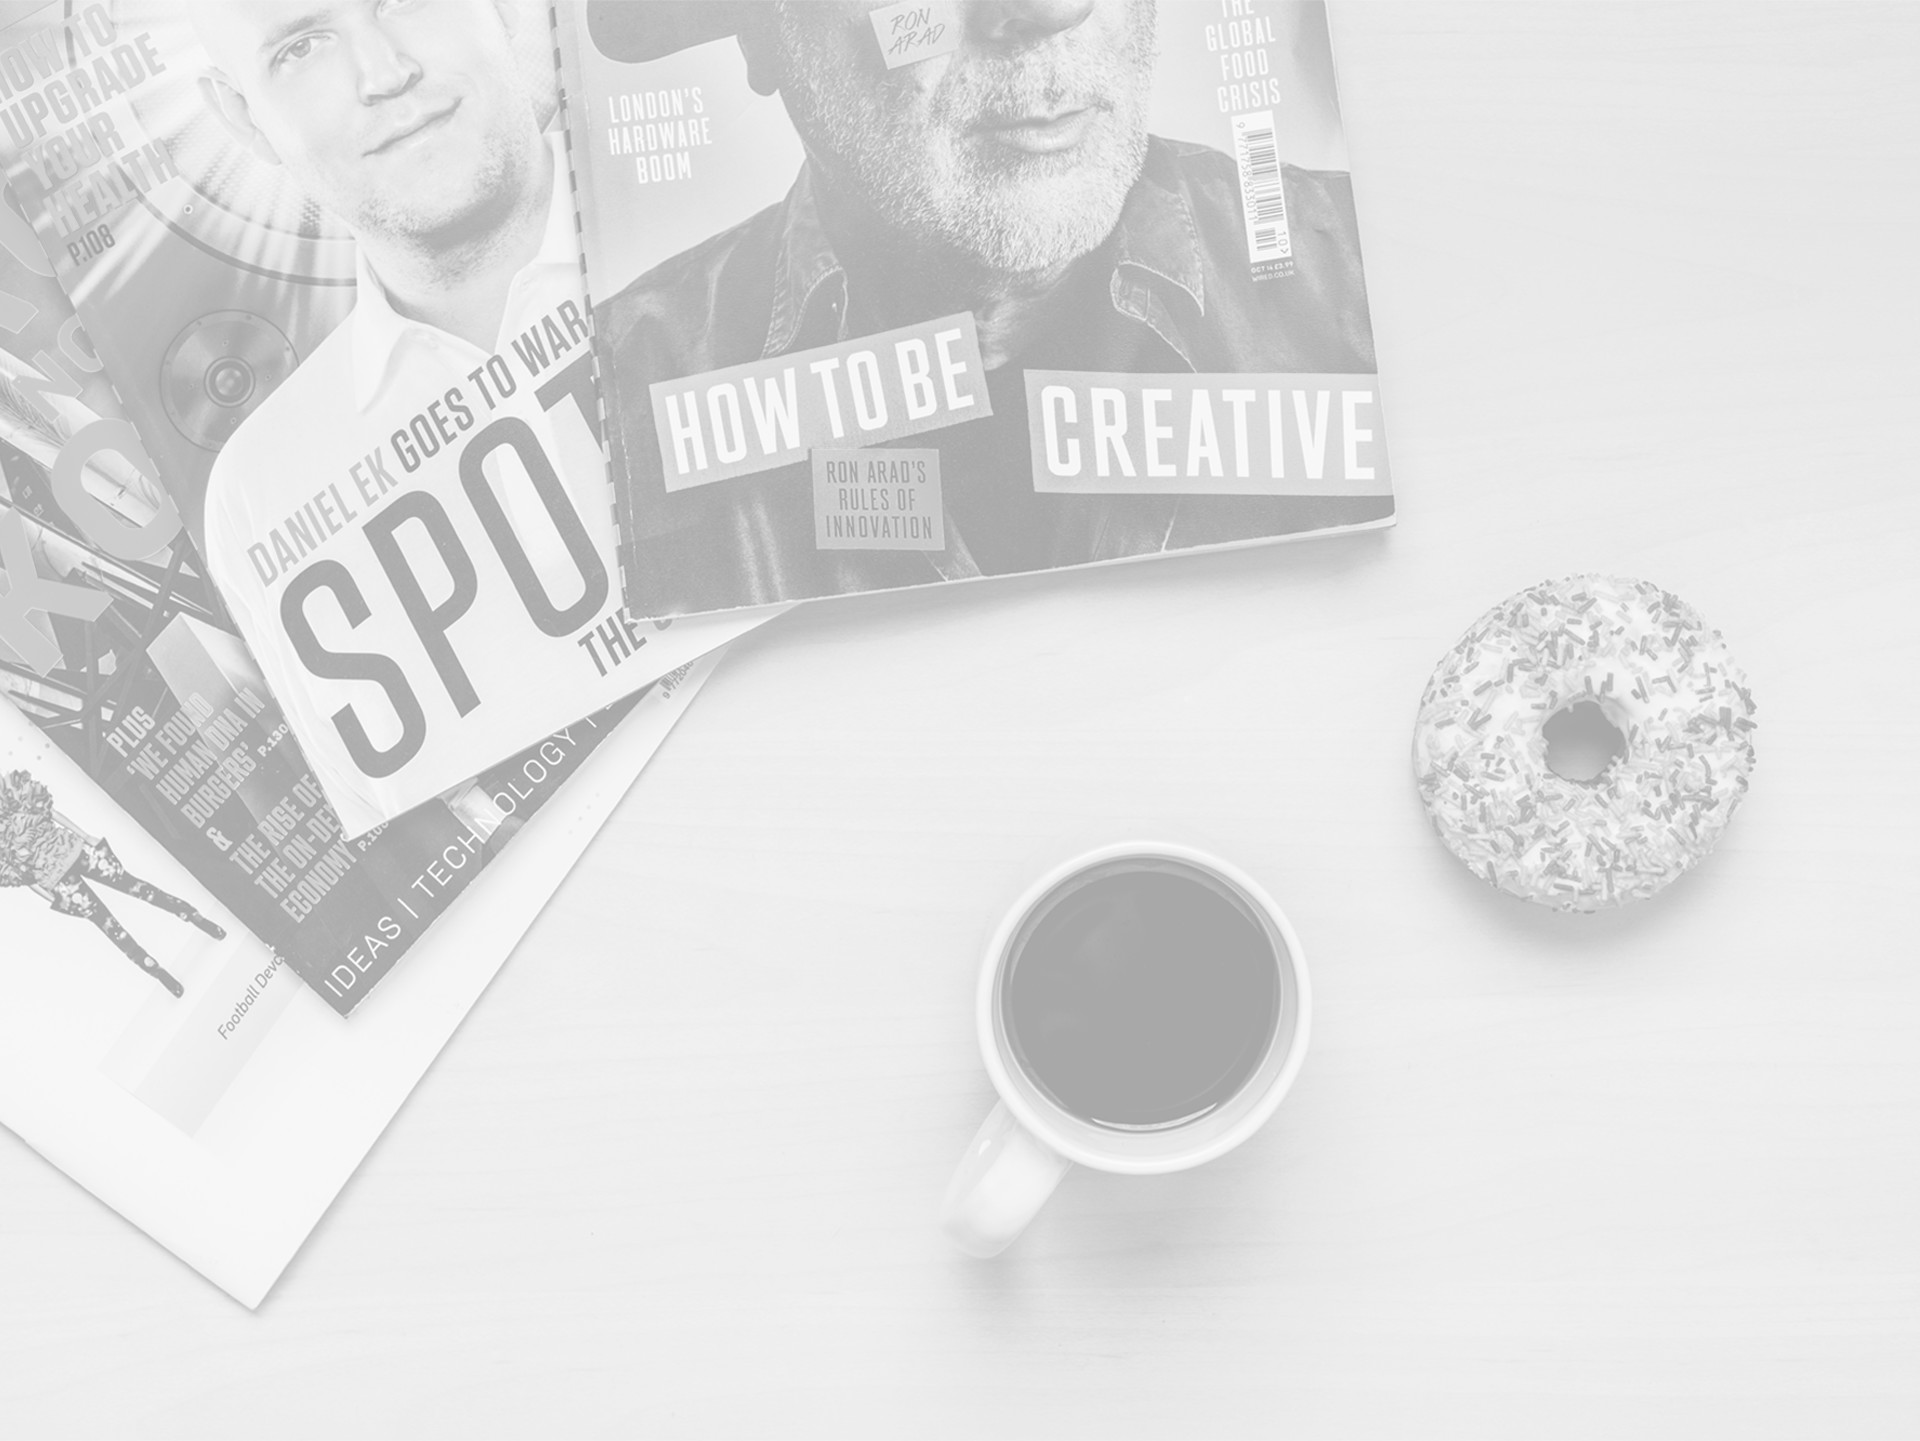 Magazines and coffee and doughnuts